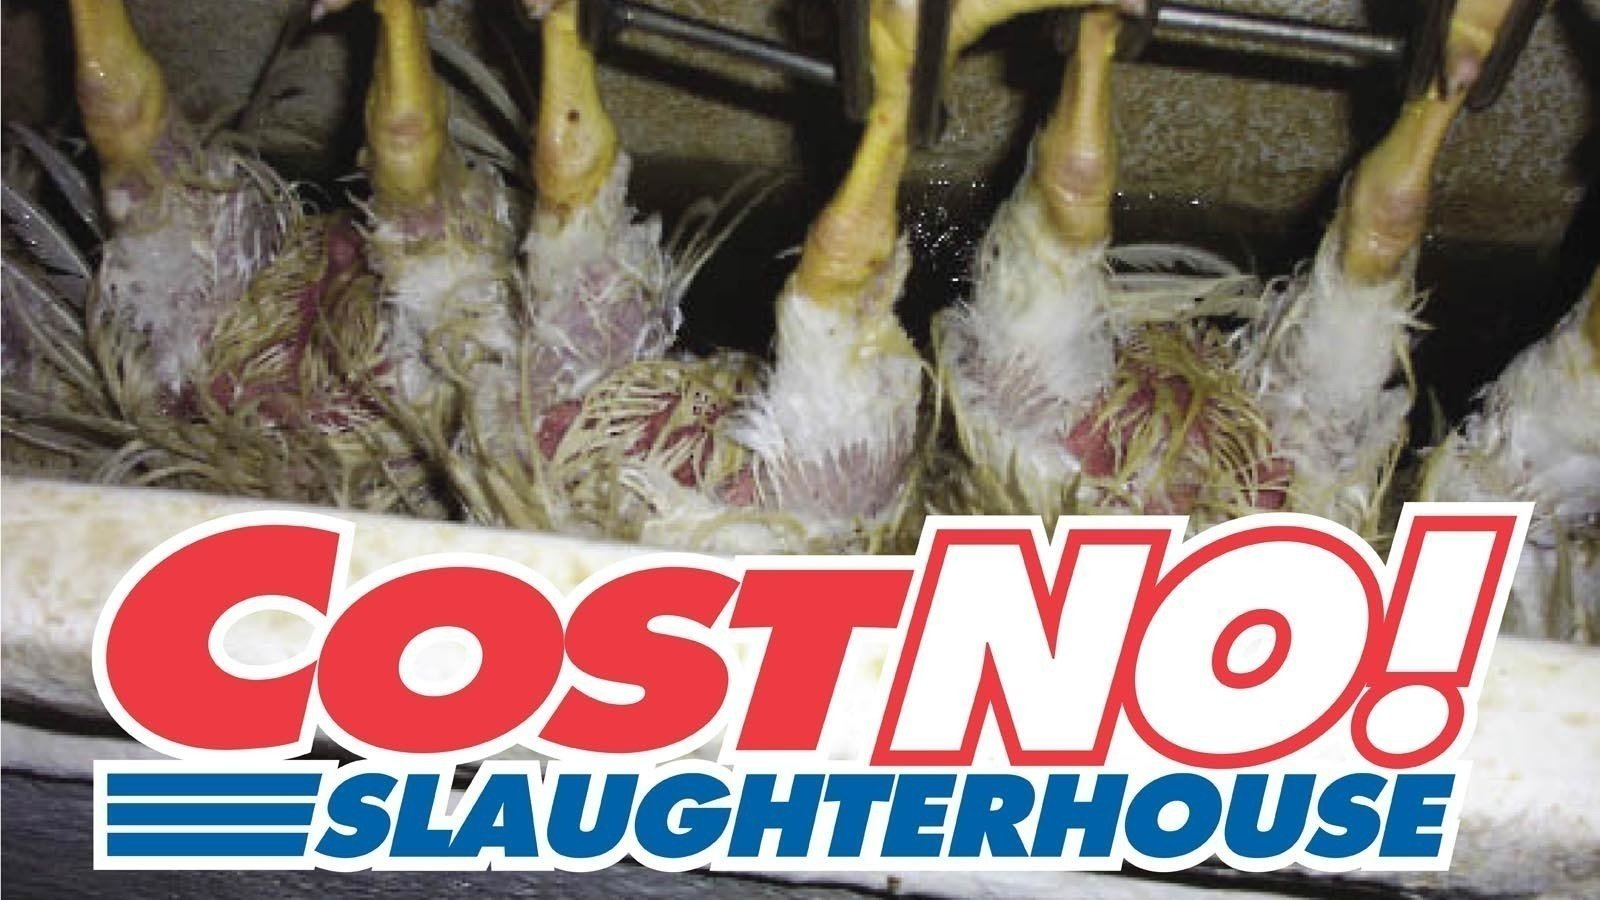 petition middot scott getzschman fremontne gov stop costco from getzschman fremontne gov stop costco from building a poultry processing plant in fremont ne middot org